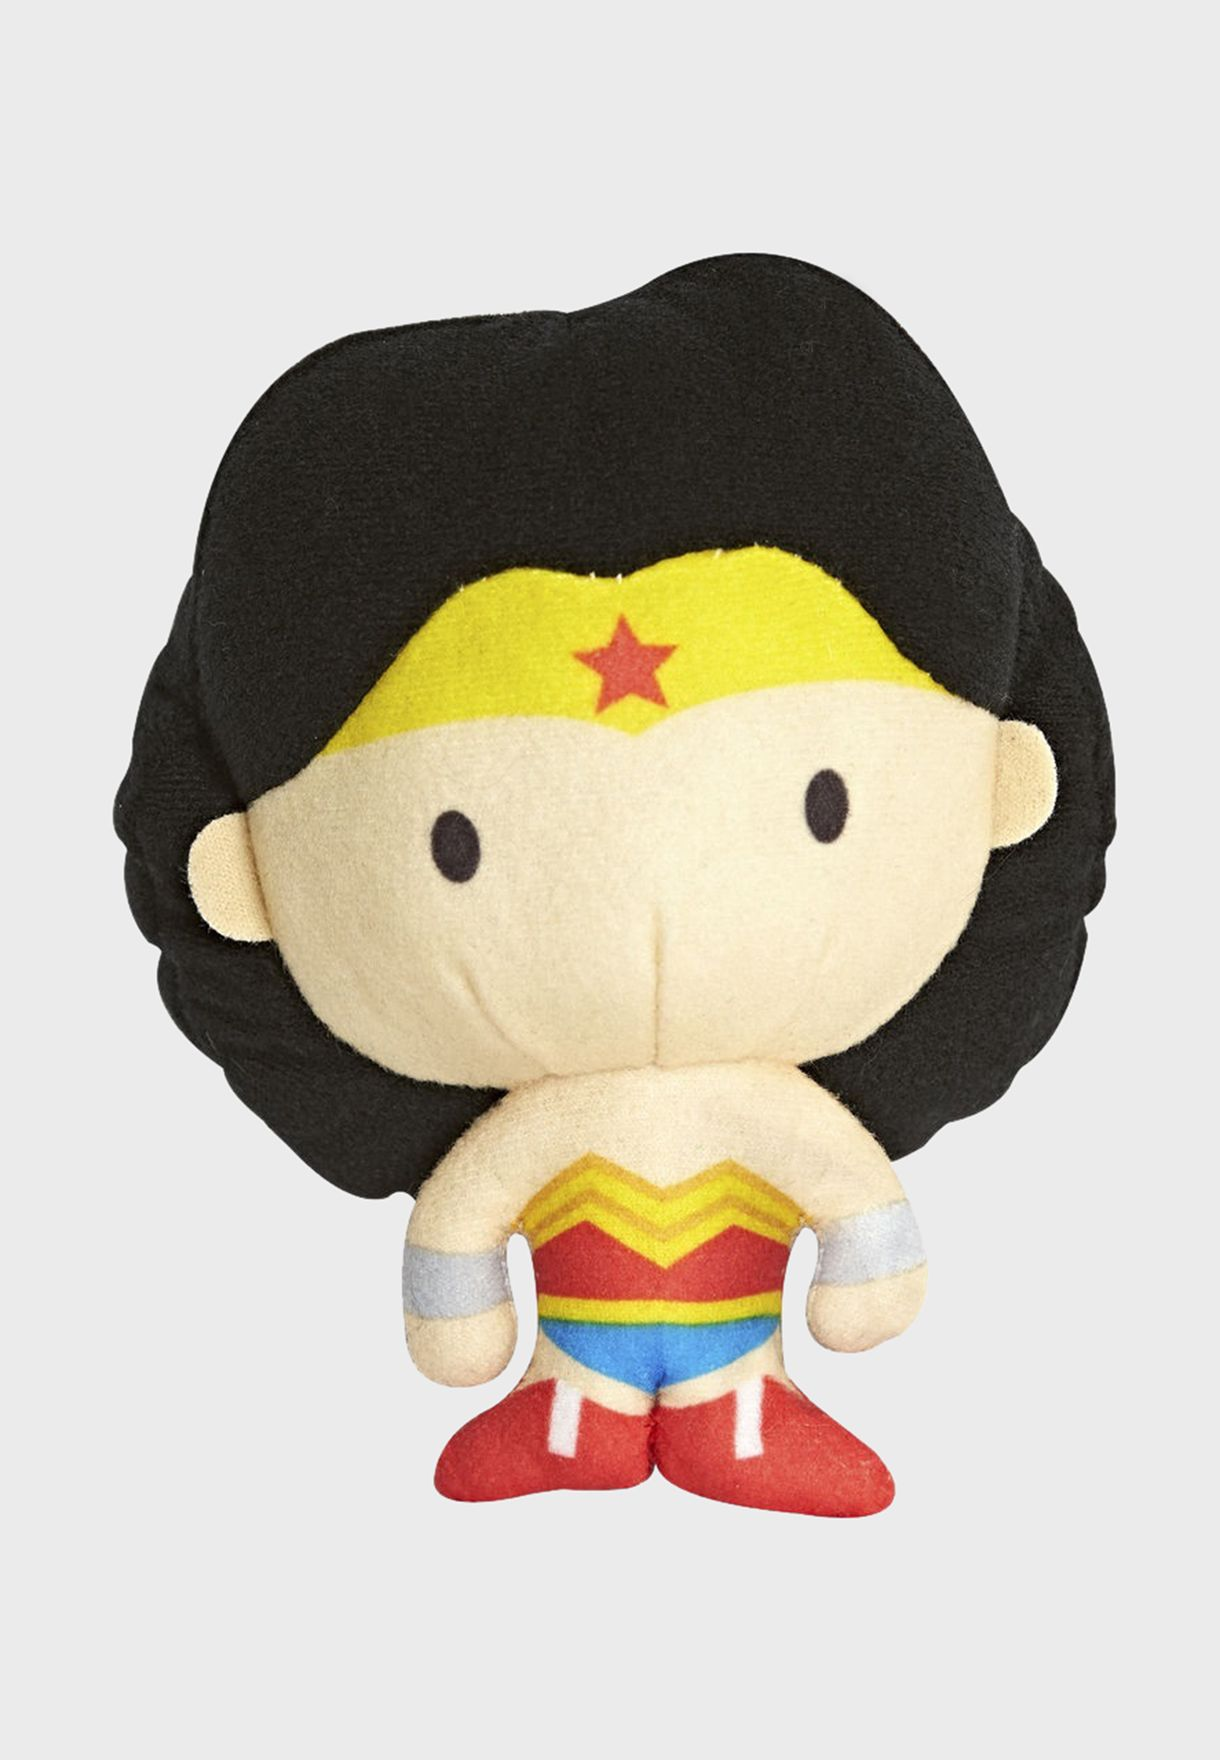 Wonder Woman Soaker Toy